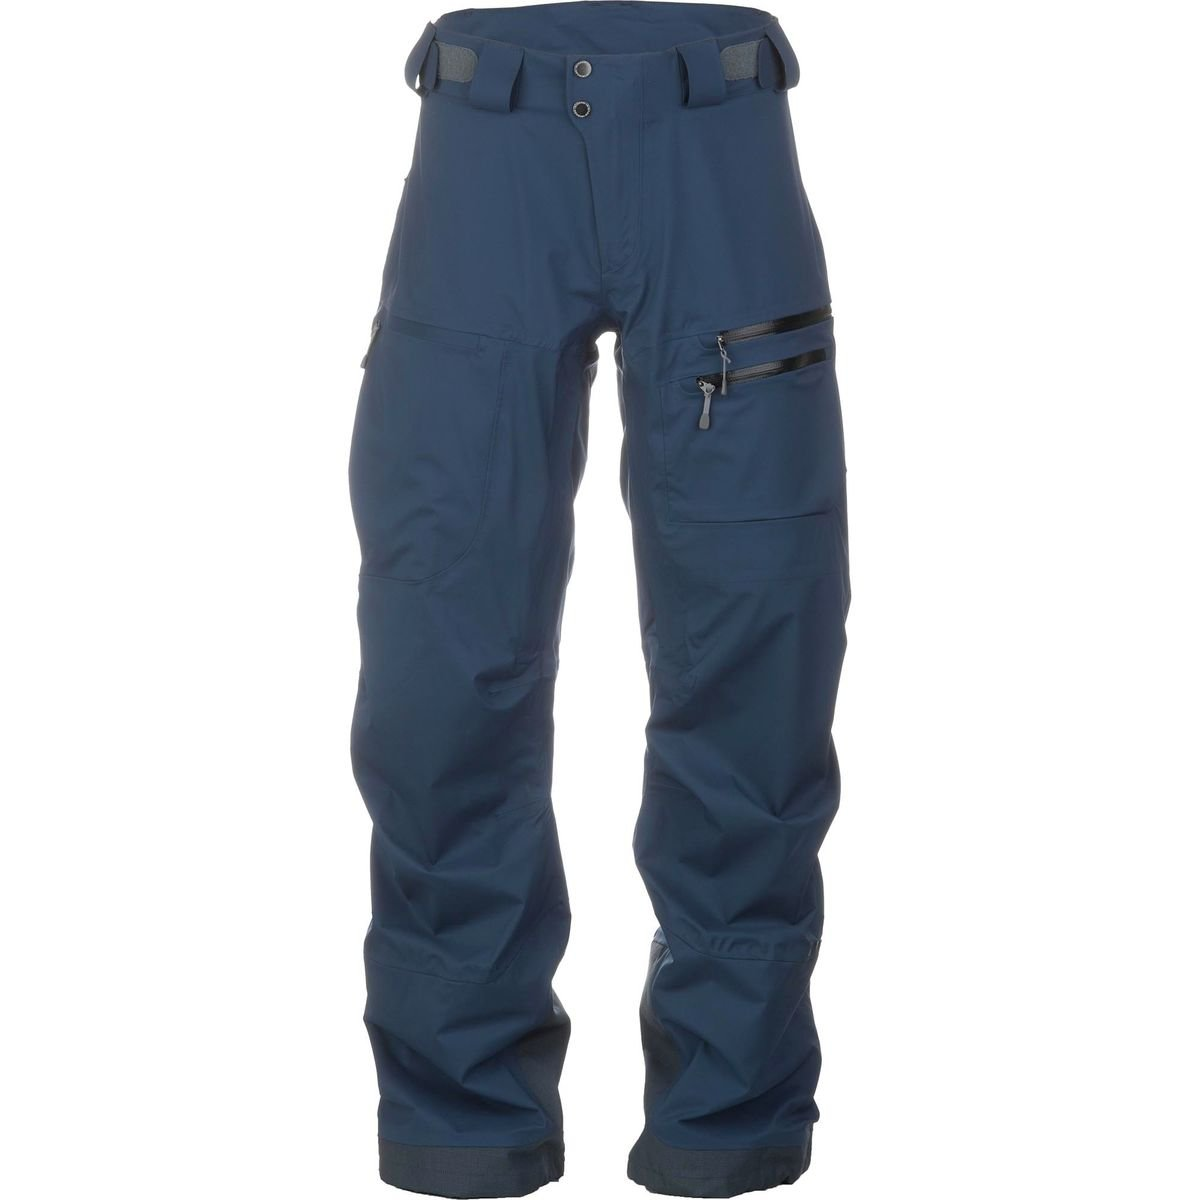 Houdini Herren Hardshellhose Ms Ascent Gear Pants